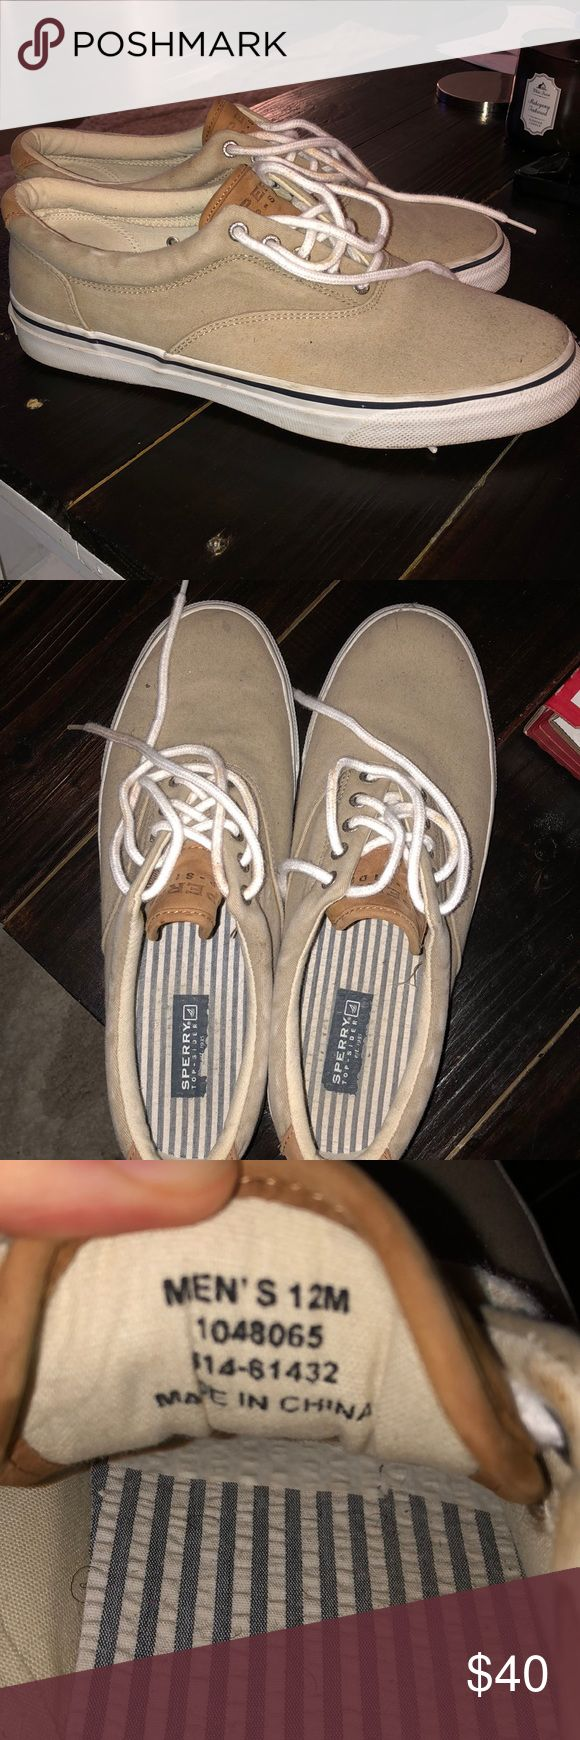 Tan Men's Sperry Top-Sider Men's Sperry sneaker. Worn very few times. A few stains but could easily be scrubbed out! Price negotiable! Sperry Shoes Sneakers